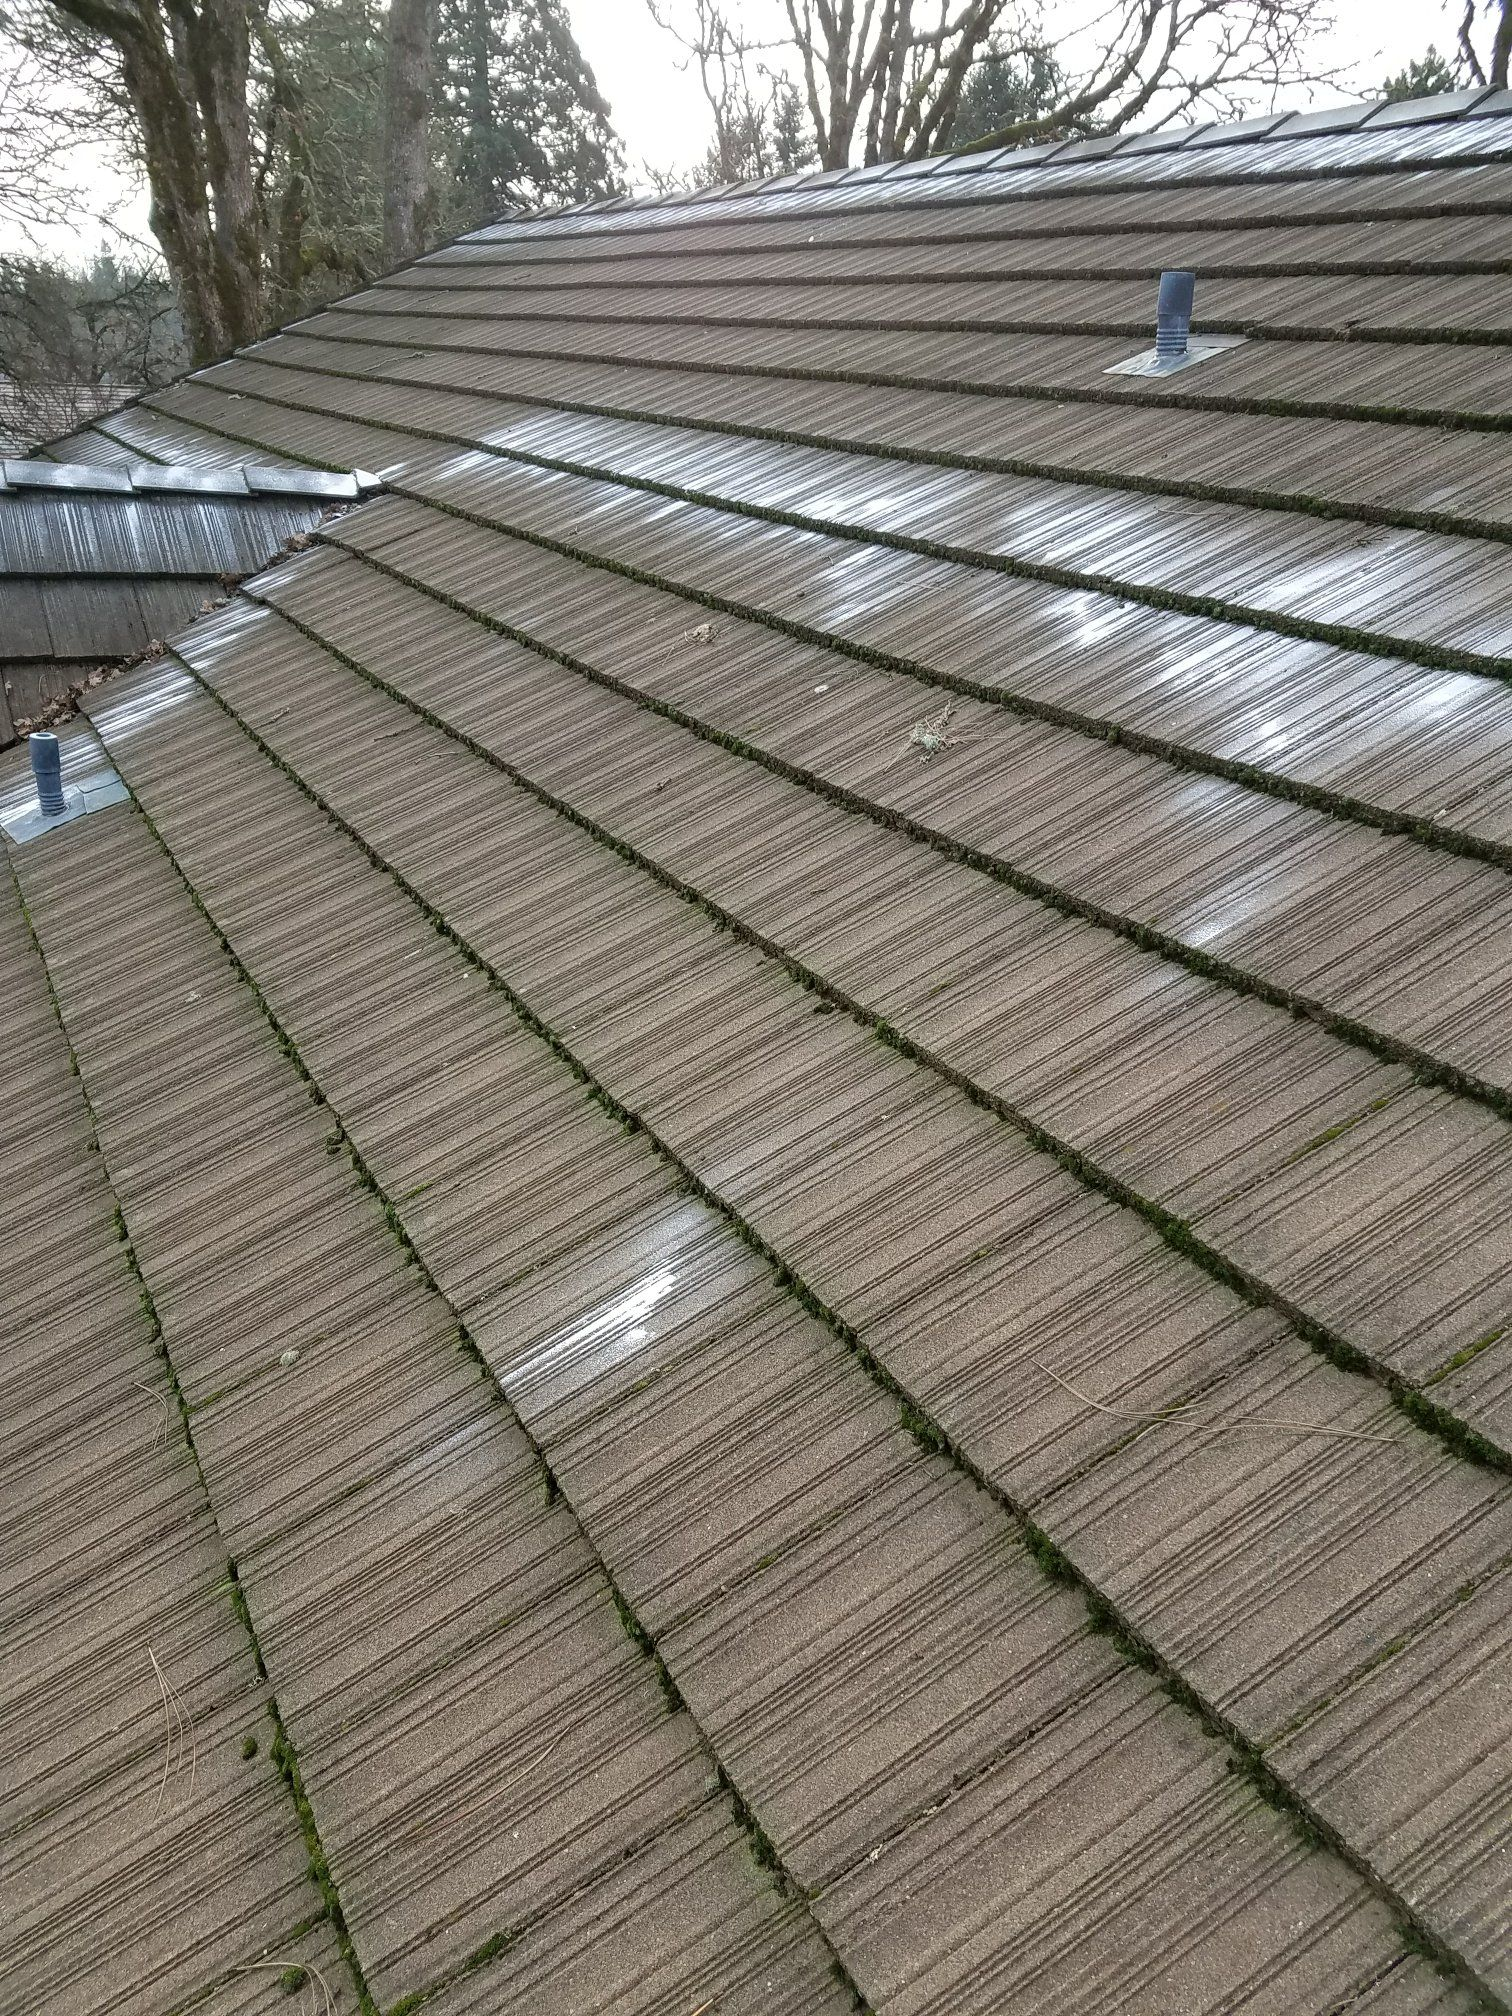 Tile Roof Repair Cleaning Vancouver Wa By Northwest Roof Maintenance Roof Maintenance Roof Repair Home Maintenance